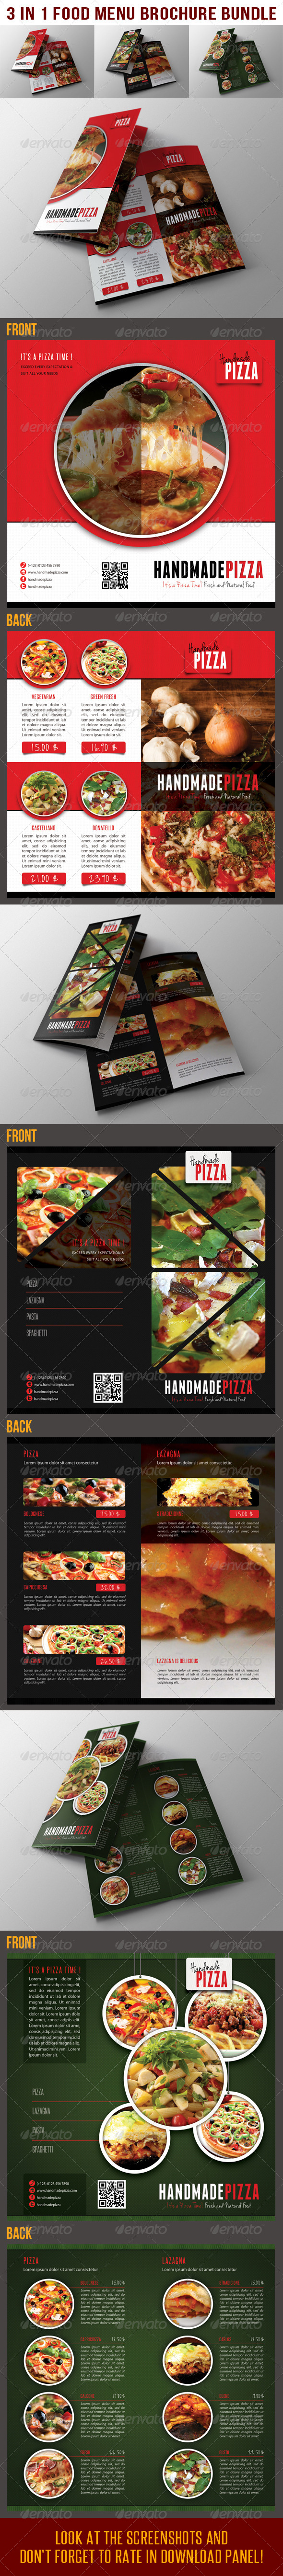 3 in 1 Food And Pizza Bifold Brochure Bundle 02 - Catalogs Brochures